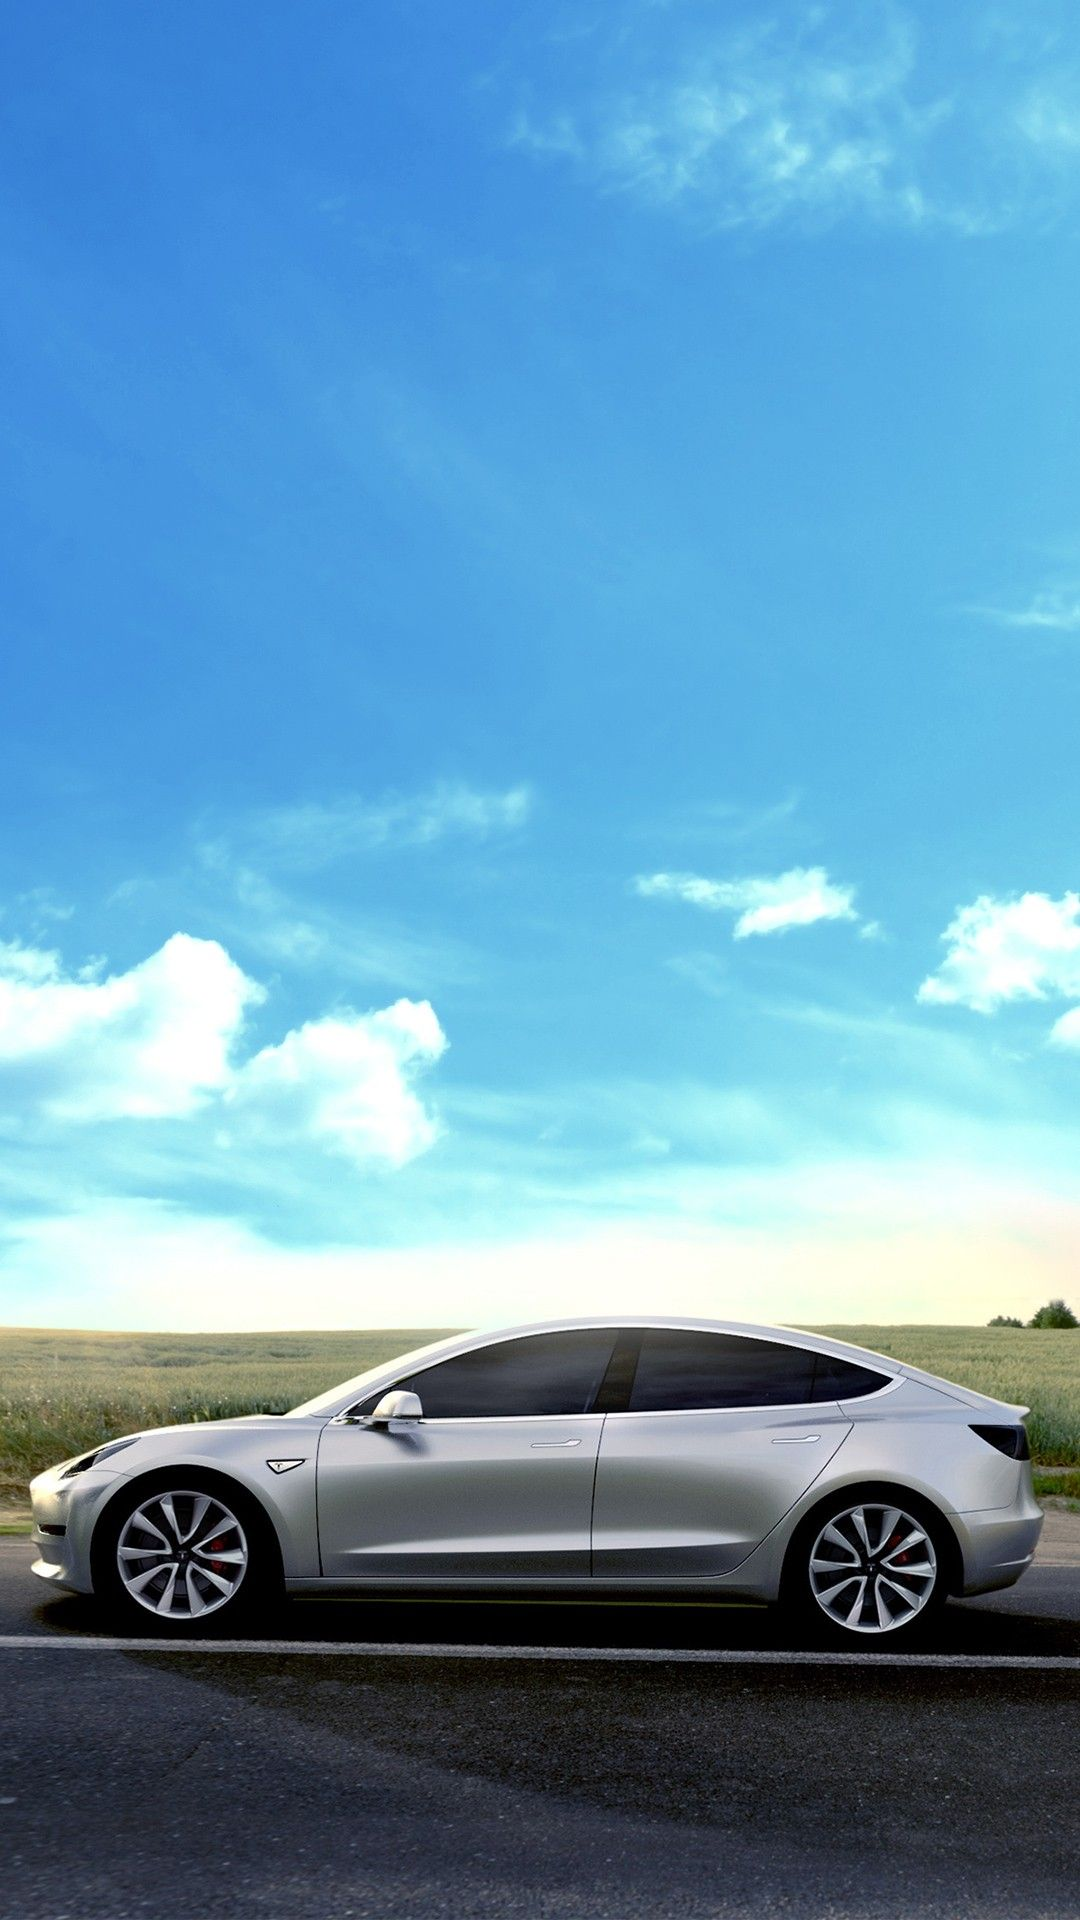 Tesla Model 3 Sky Clouds Smartphone Wallpaper and